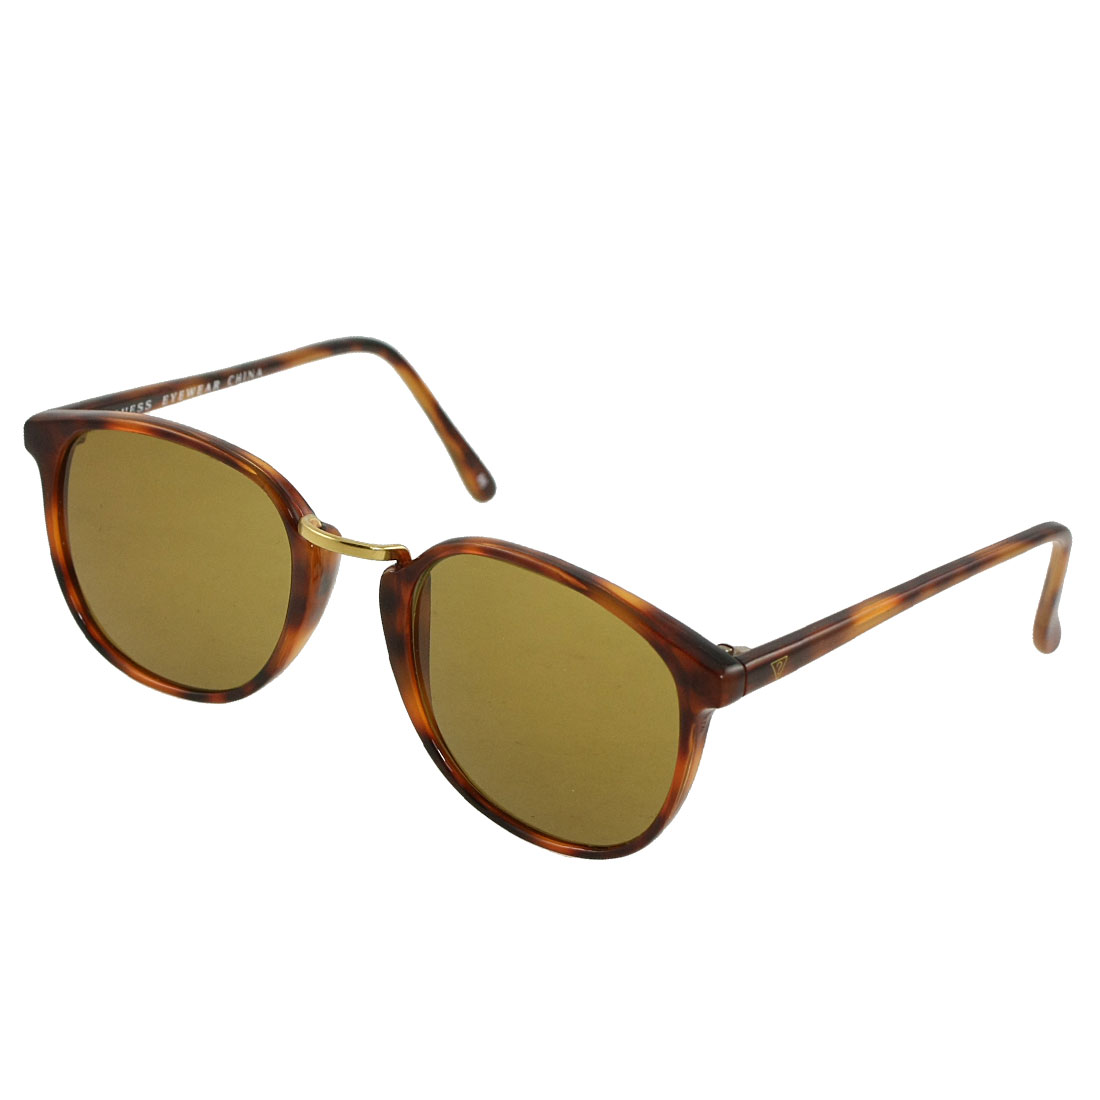 Tan Lens Full Frame Plastic Sunglasses for Woman Man